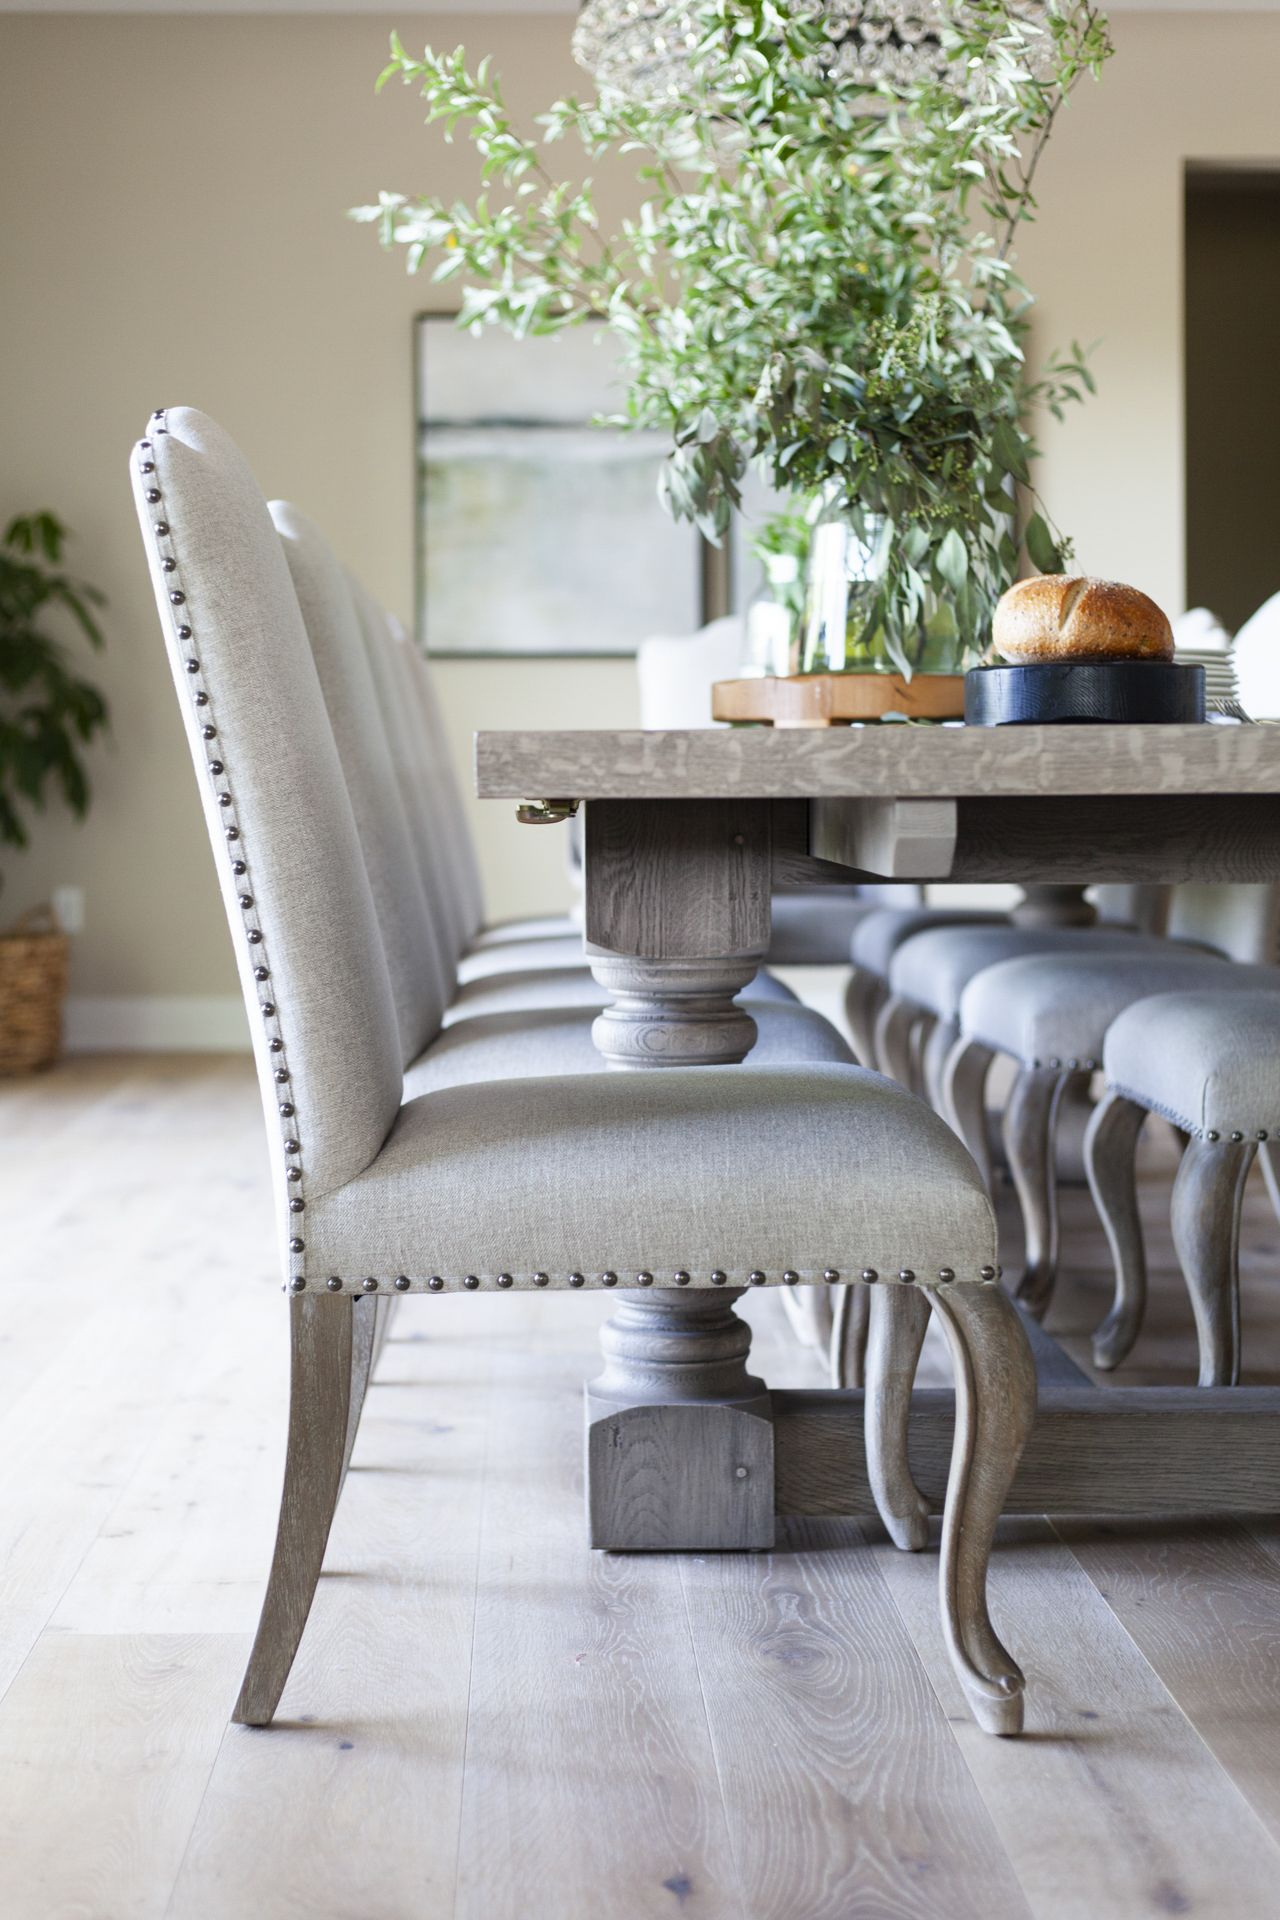 Home Reveal | Shabby Chic Dining Room, Dining Chairs, Dining Throughout 2017 Gray Wash Lorraine Extending Dining Tables (View 8 of 25)